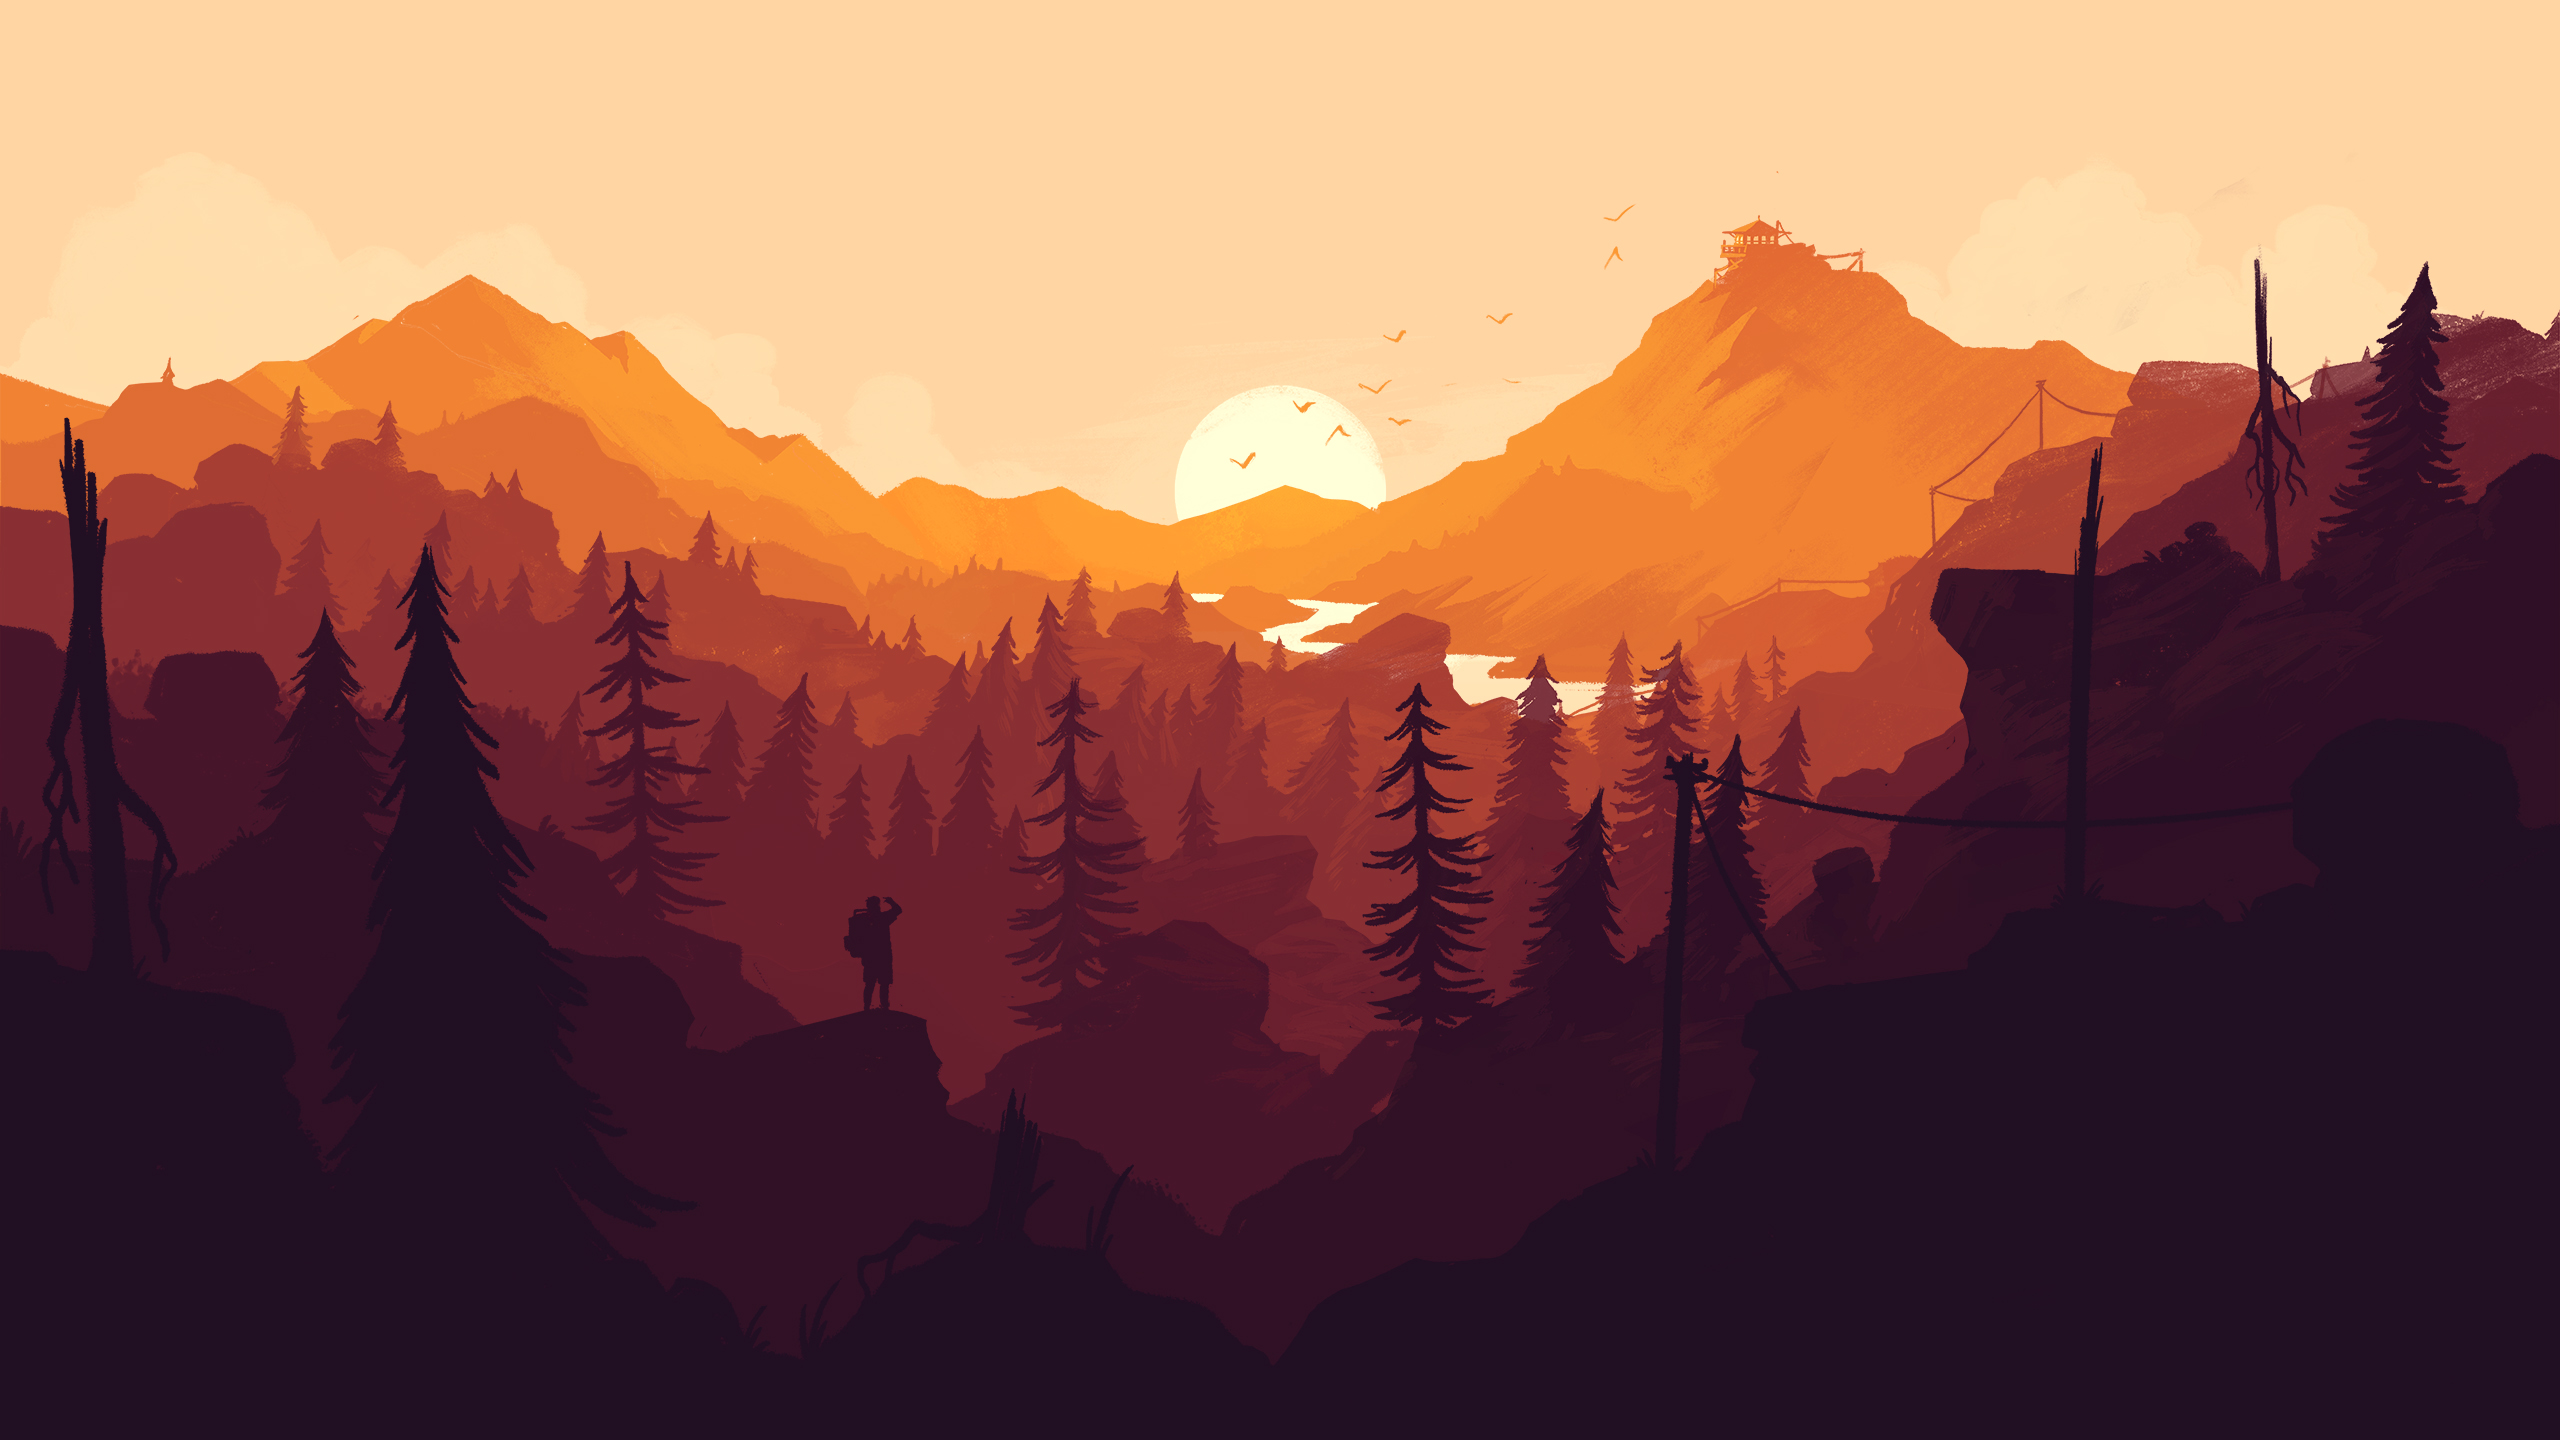 Firewatch wallpaper for iPhone and desktop my iGadget 2560x1440